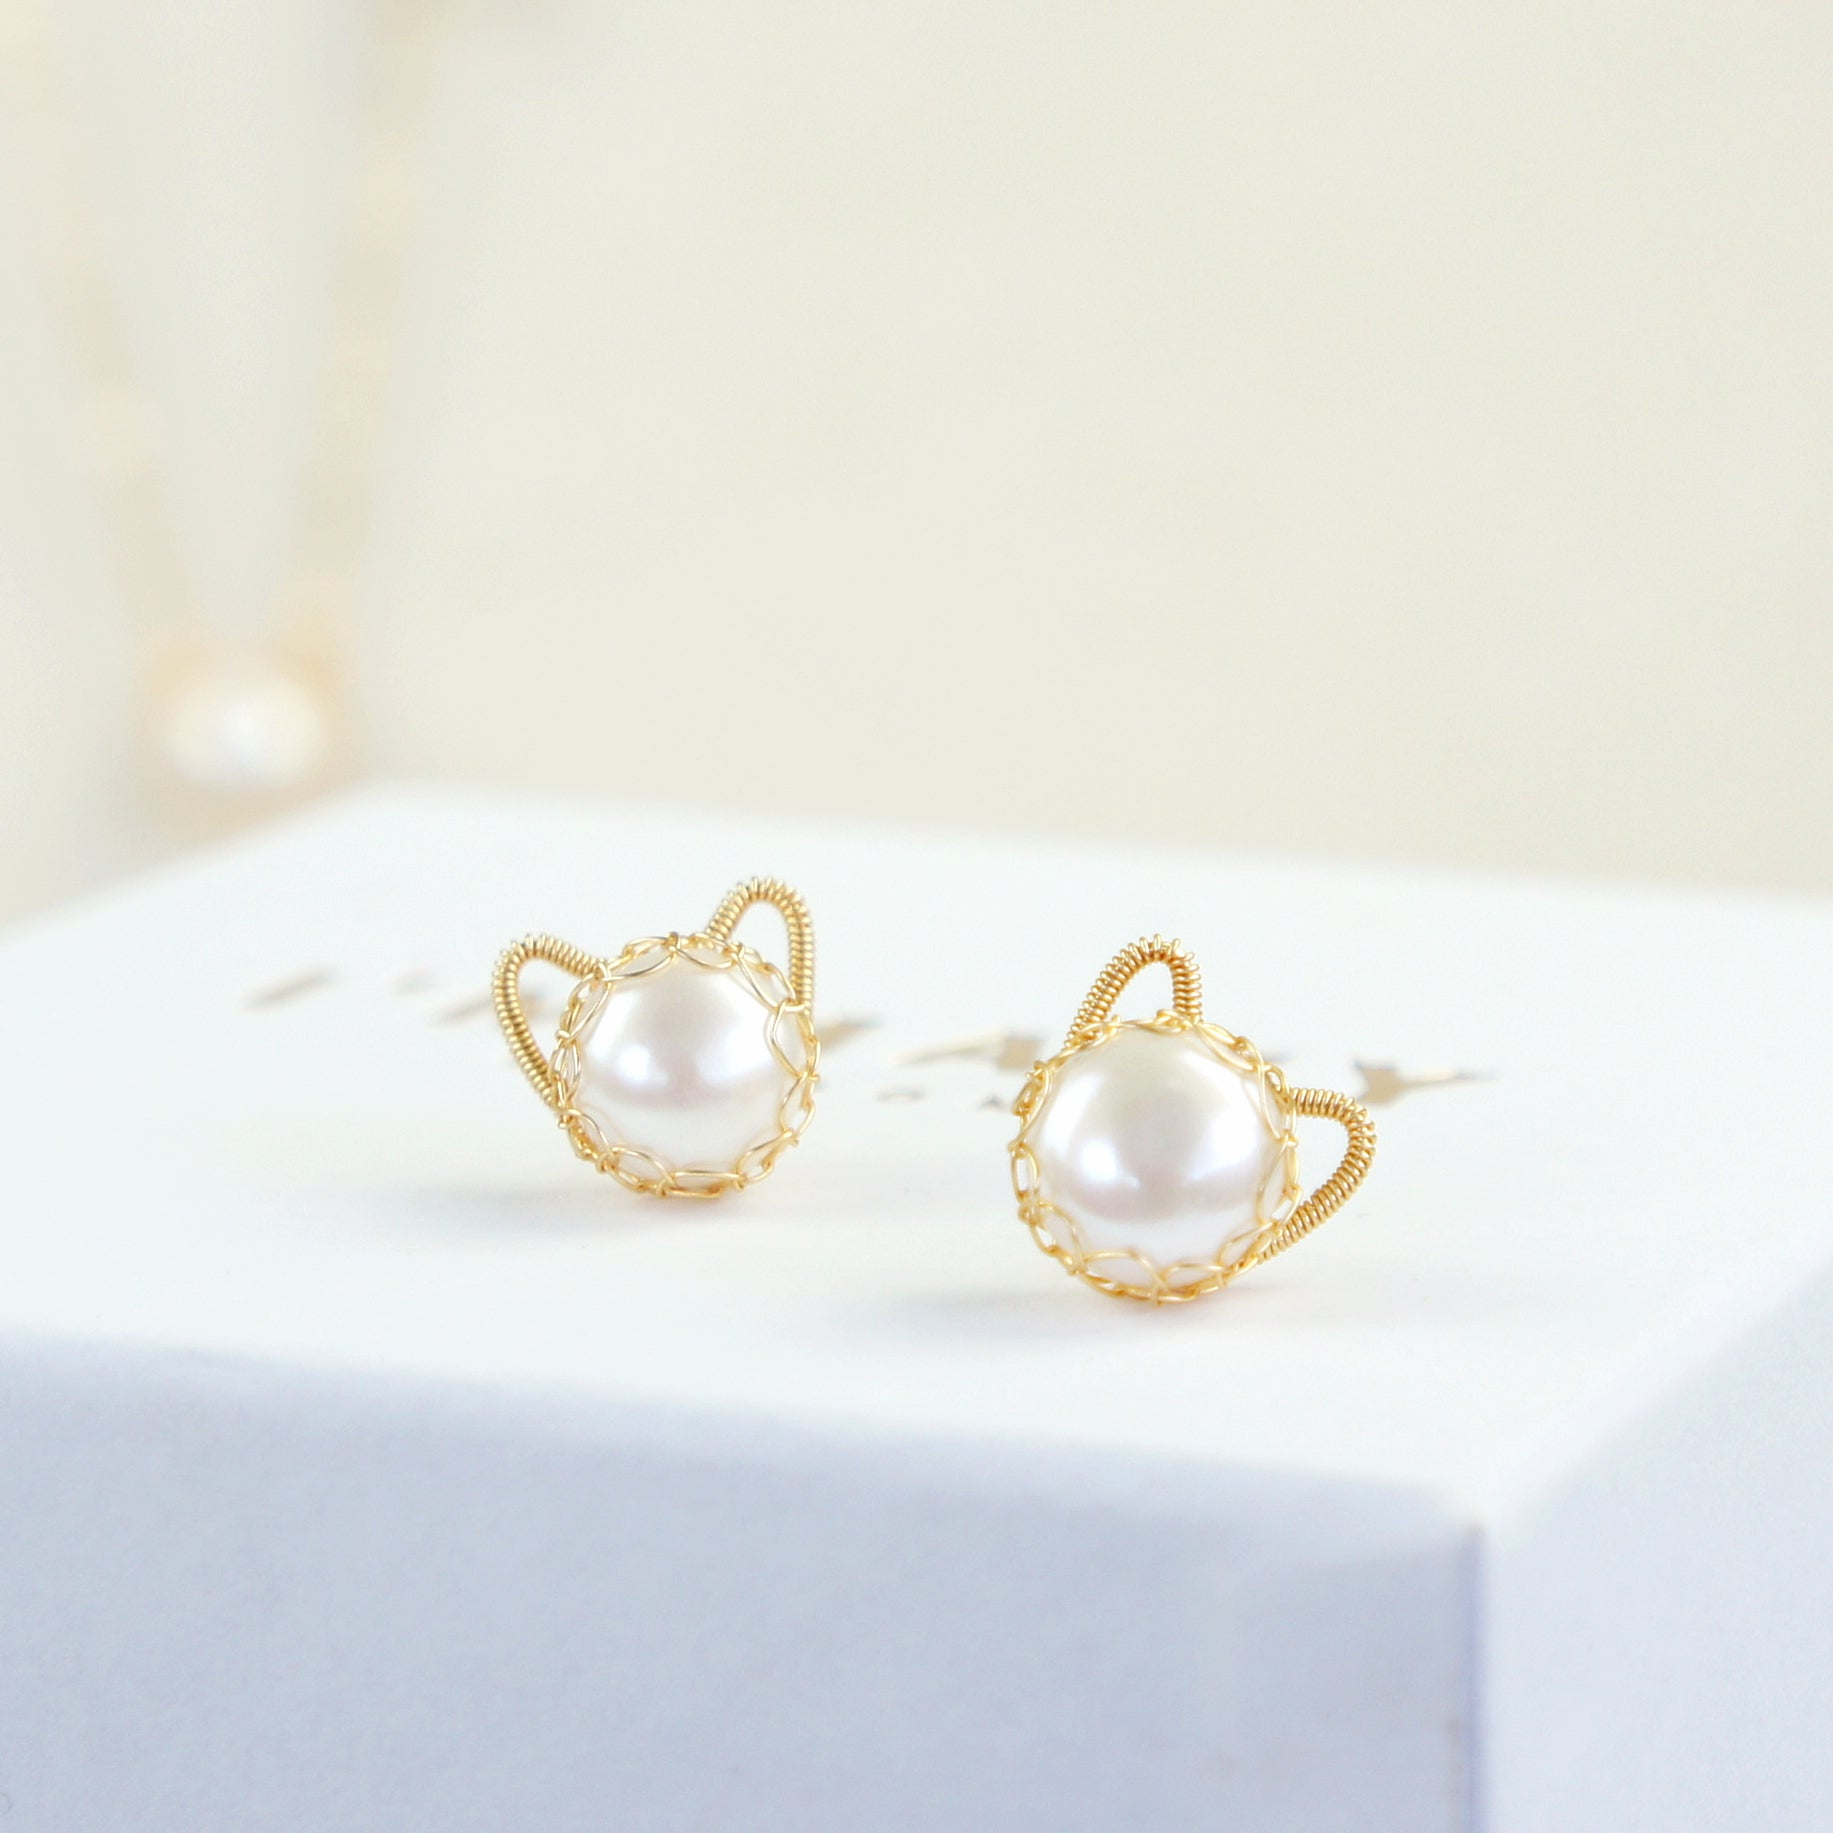 You're Purrfect 10mm Freshwater Pearl Cat Earring Studs